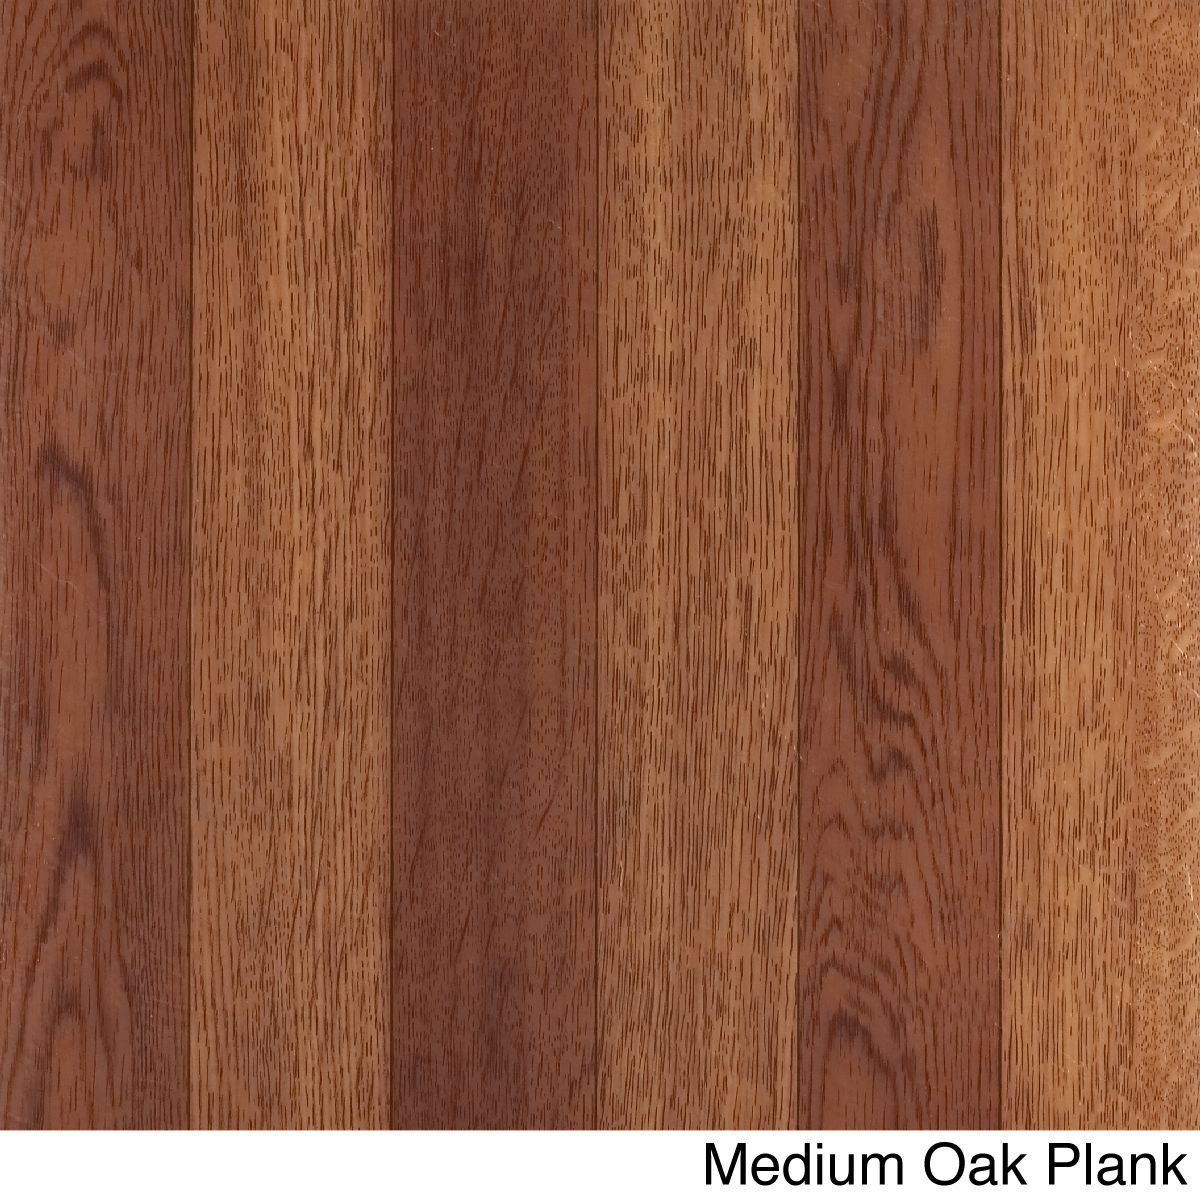 Nexus wood look 12x12 self adhesive vinyl floor tile 20 tiles20 nexus wood look 12x12 self adhesive vinyl floor tile 20 tiles20 sq doublecrazyfo Choice Image